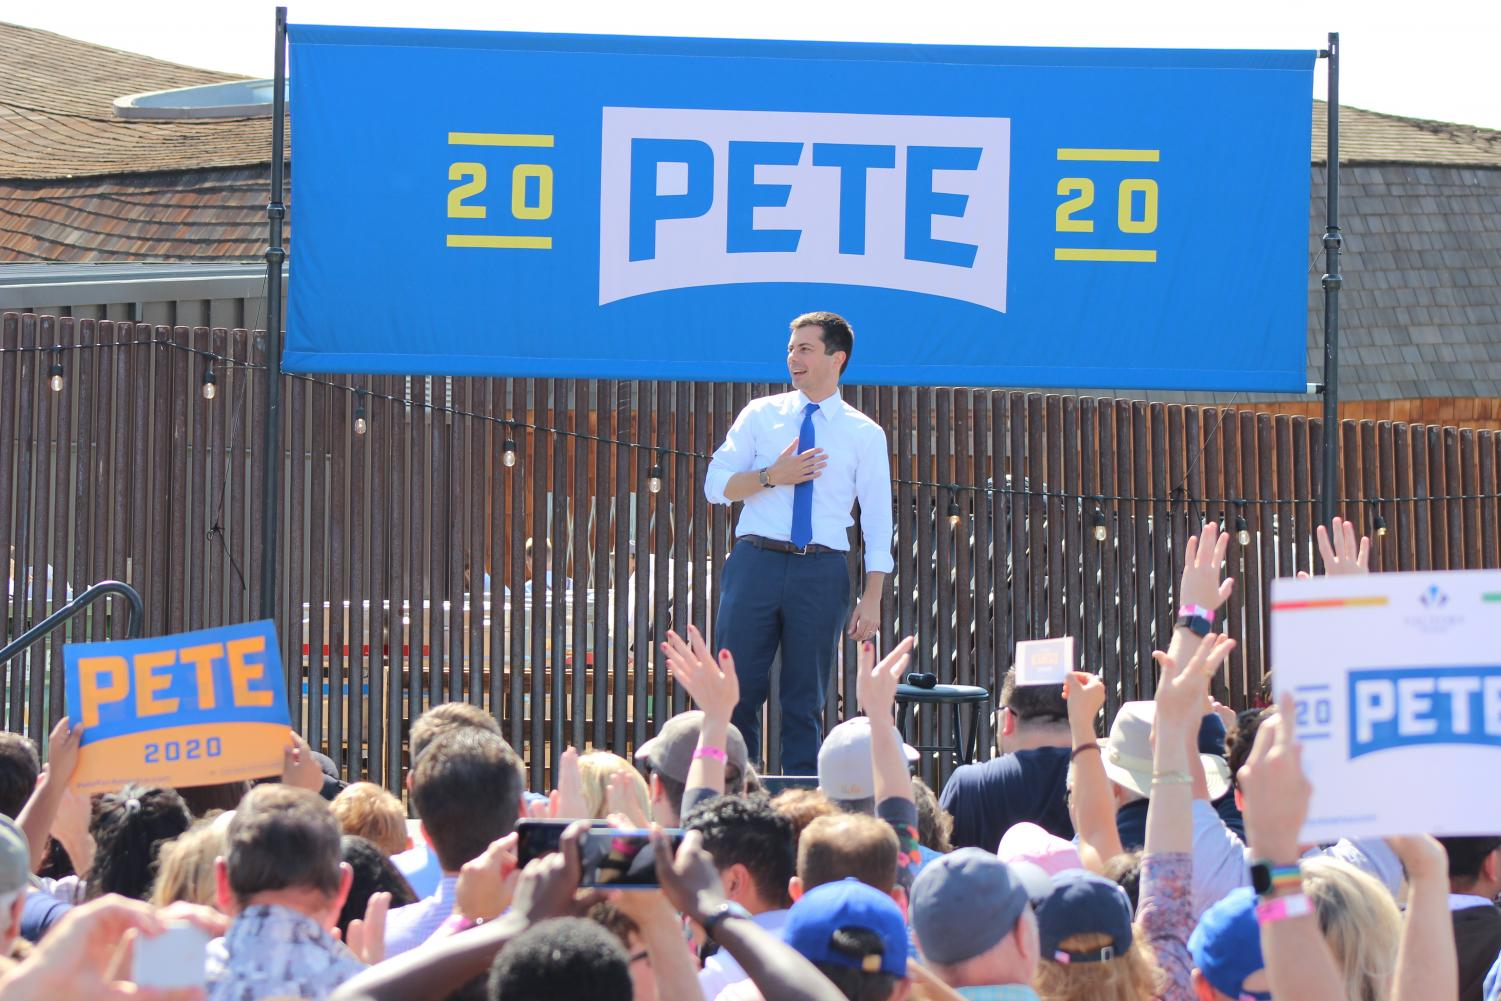 Presidential candidate Pete Buttigieg introduces himself to the crowd Sept. 29 in West Sacramento before participating in an audience-led question and answer session. The 37-year-old candidate and mayor of South Bend, Ind. spent 90 minutes on site for the